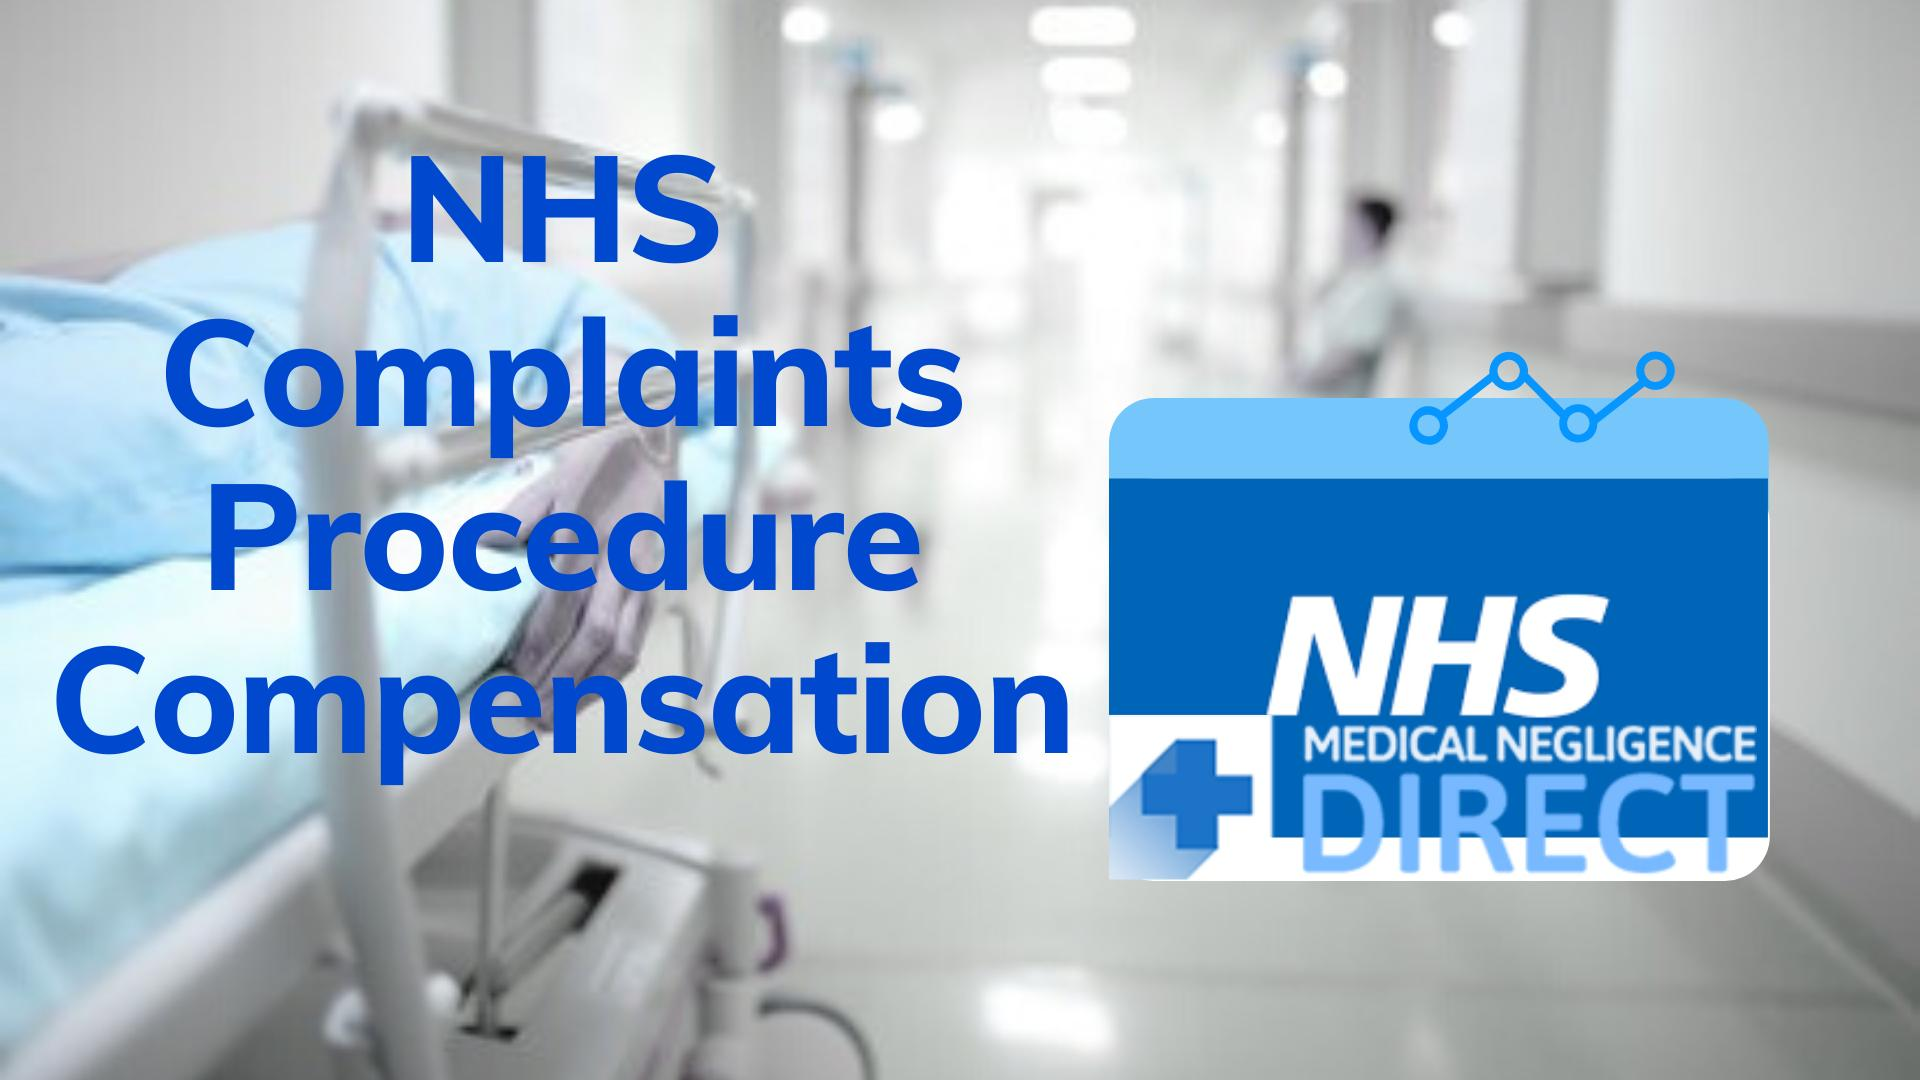 Image - Do you know How to #SueTheNHS. Read our #NHSComplaintsProcedureCompensation guide for the NHS Negligence Clai...